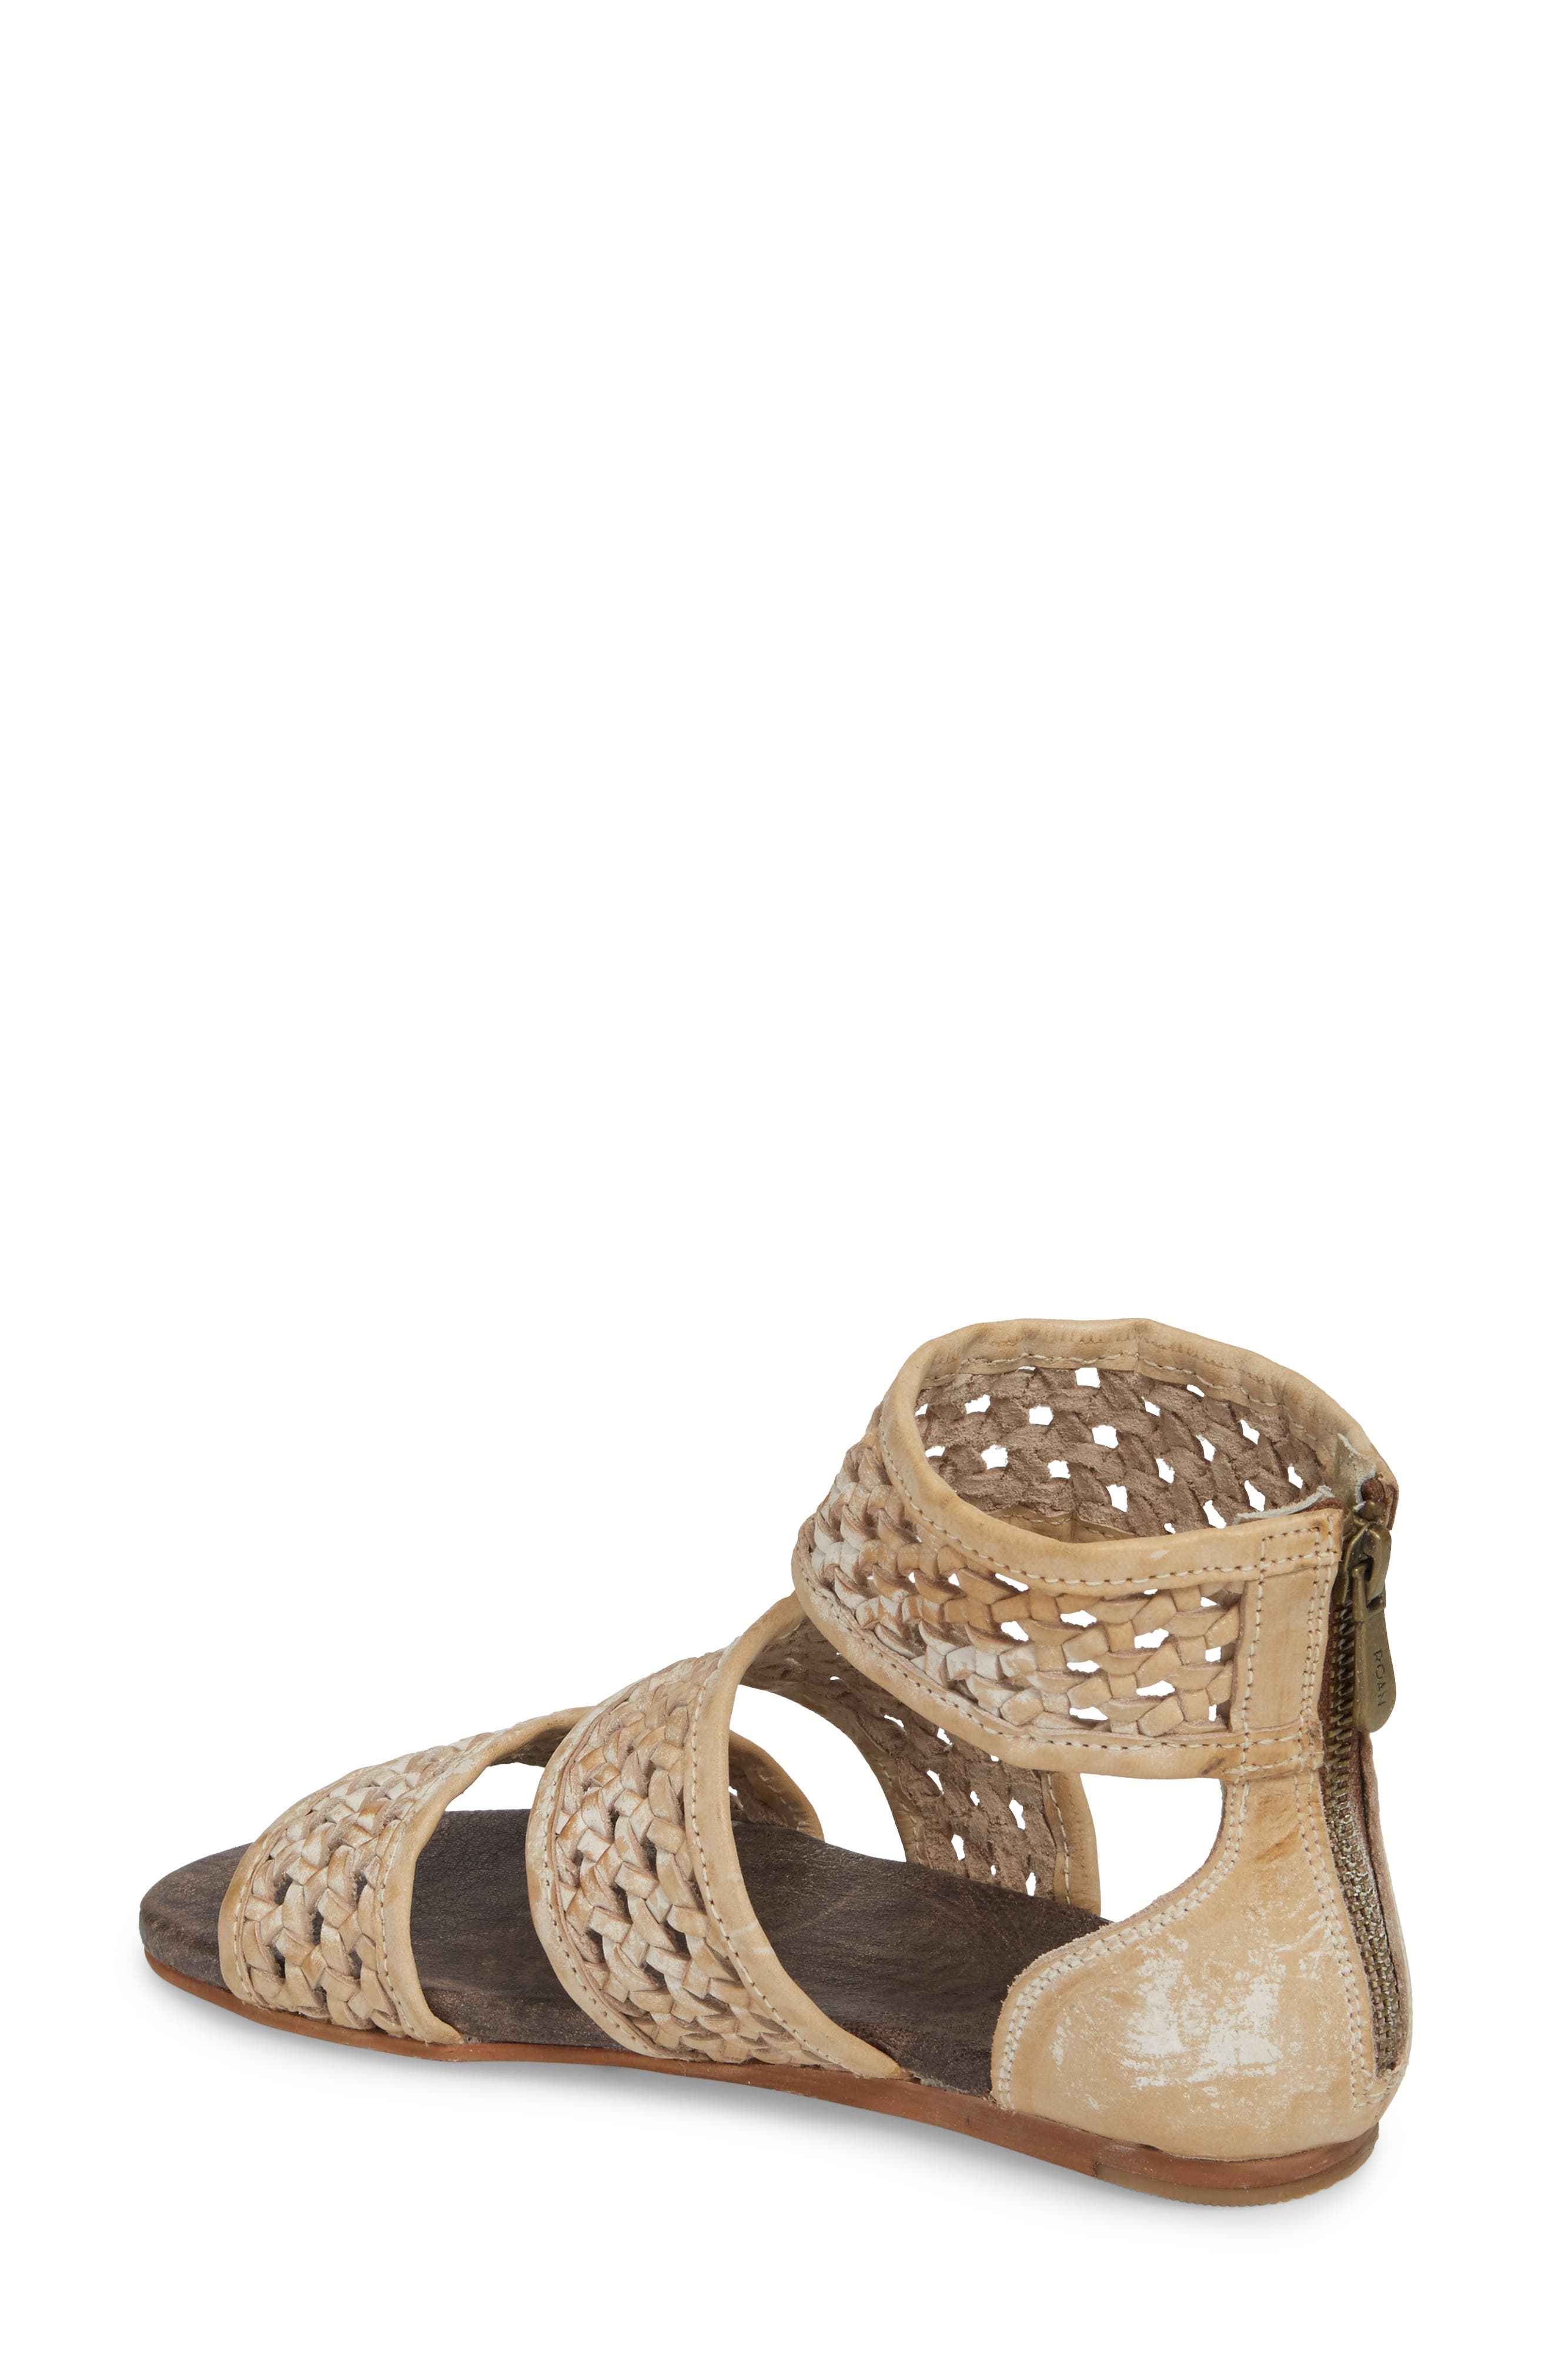 ROAN, Clio Woven Ankle Cuff Sandal, Alternate thumbnail 2, color, TAUPE